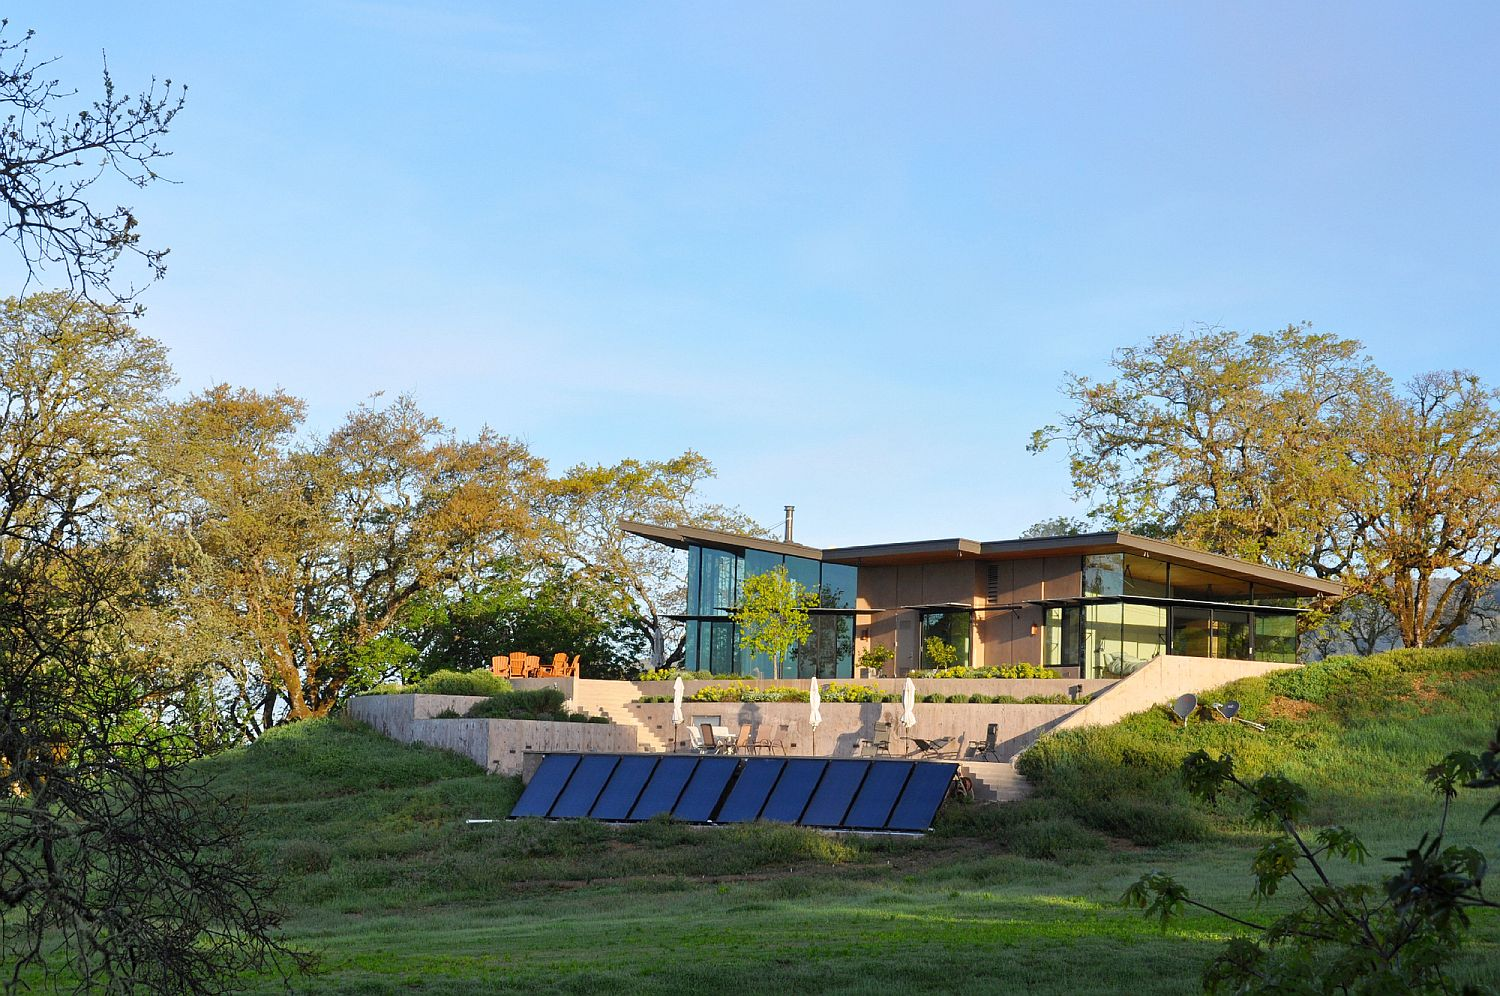 Photovoltaic panels power the beautiful Yourkville House